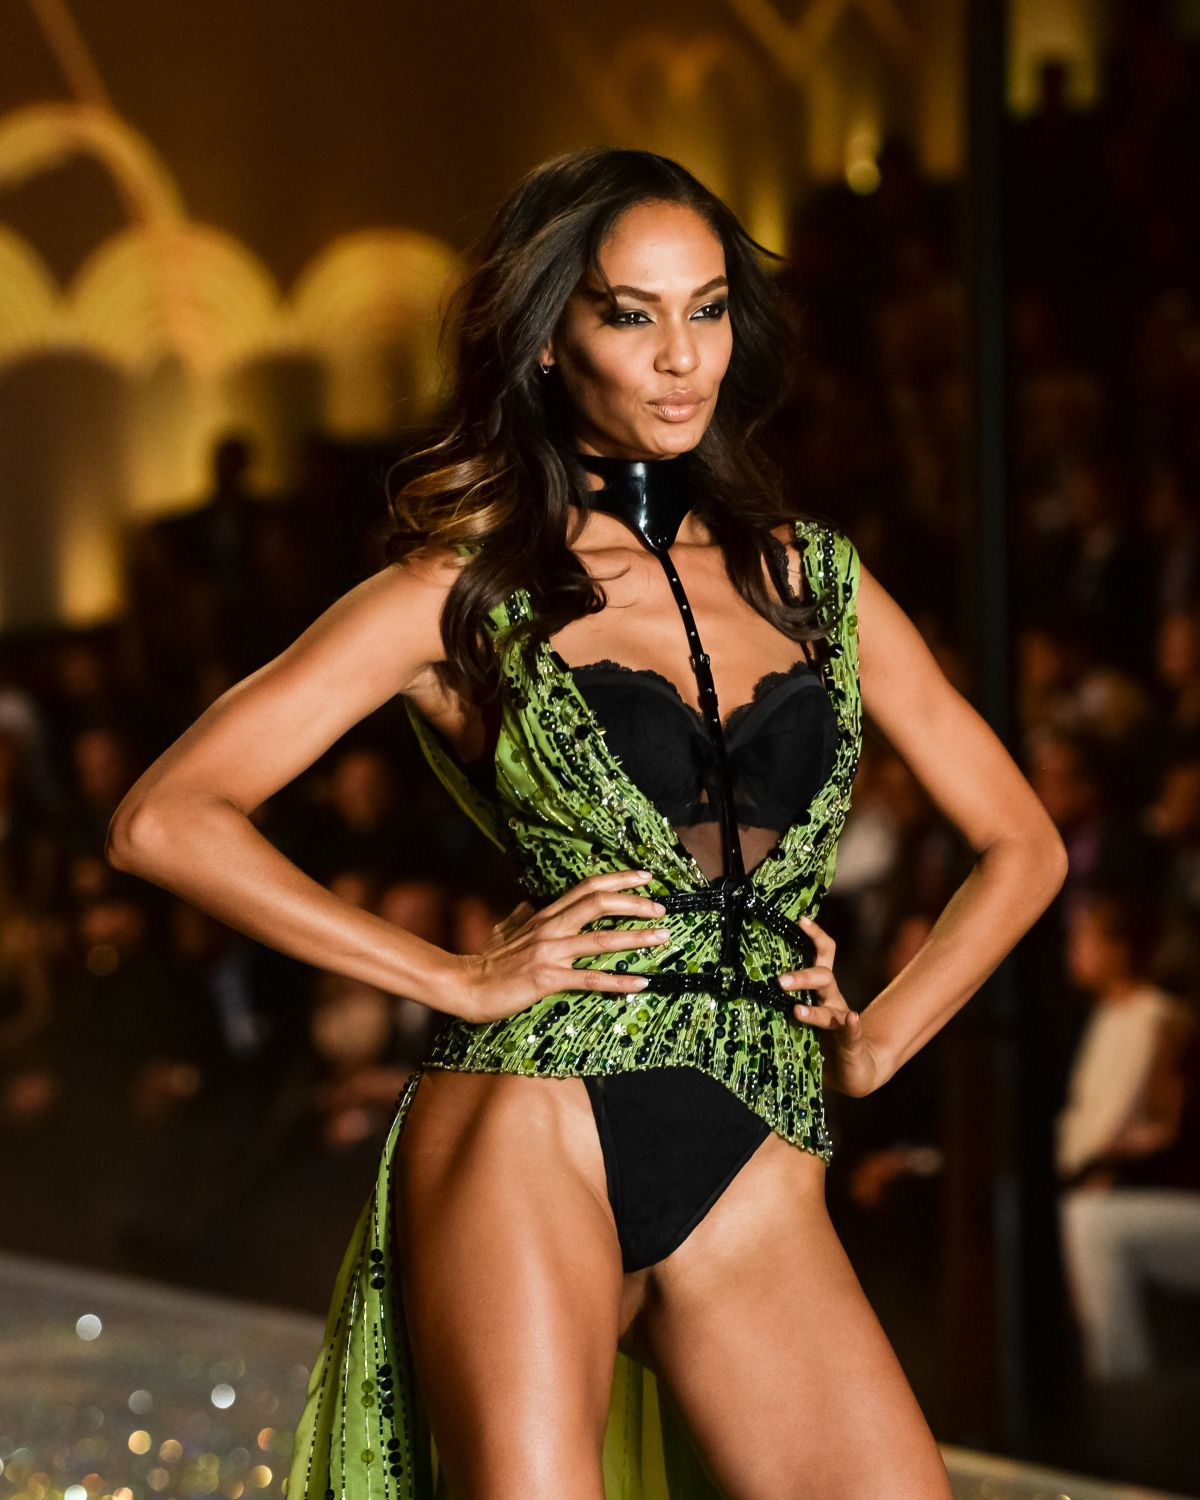 joan-smalls-at-2013-victoria-s-secret-fashion-show-in-new-york_14.jpg - 194.54 KB